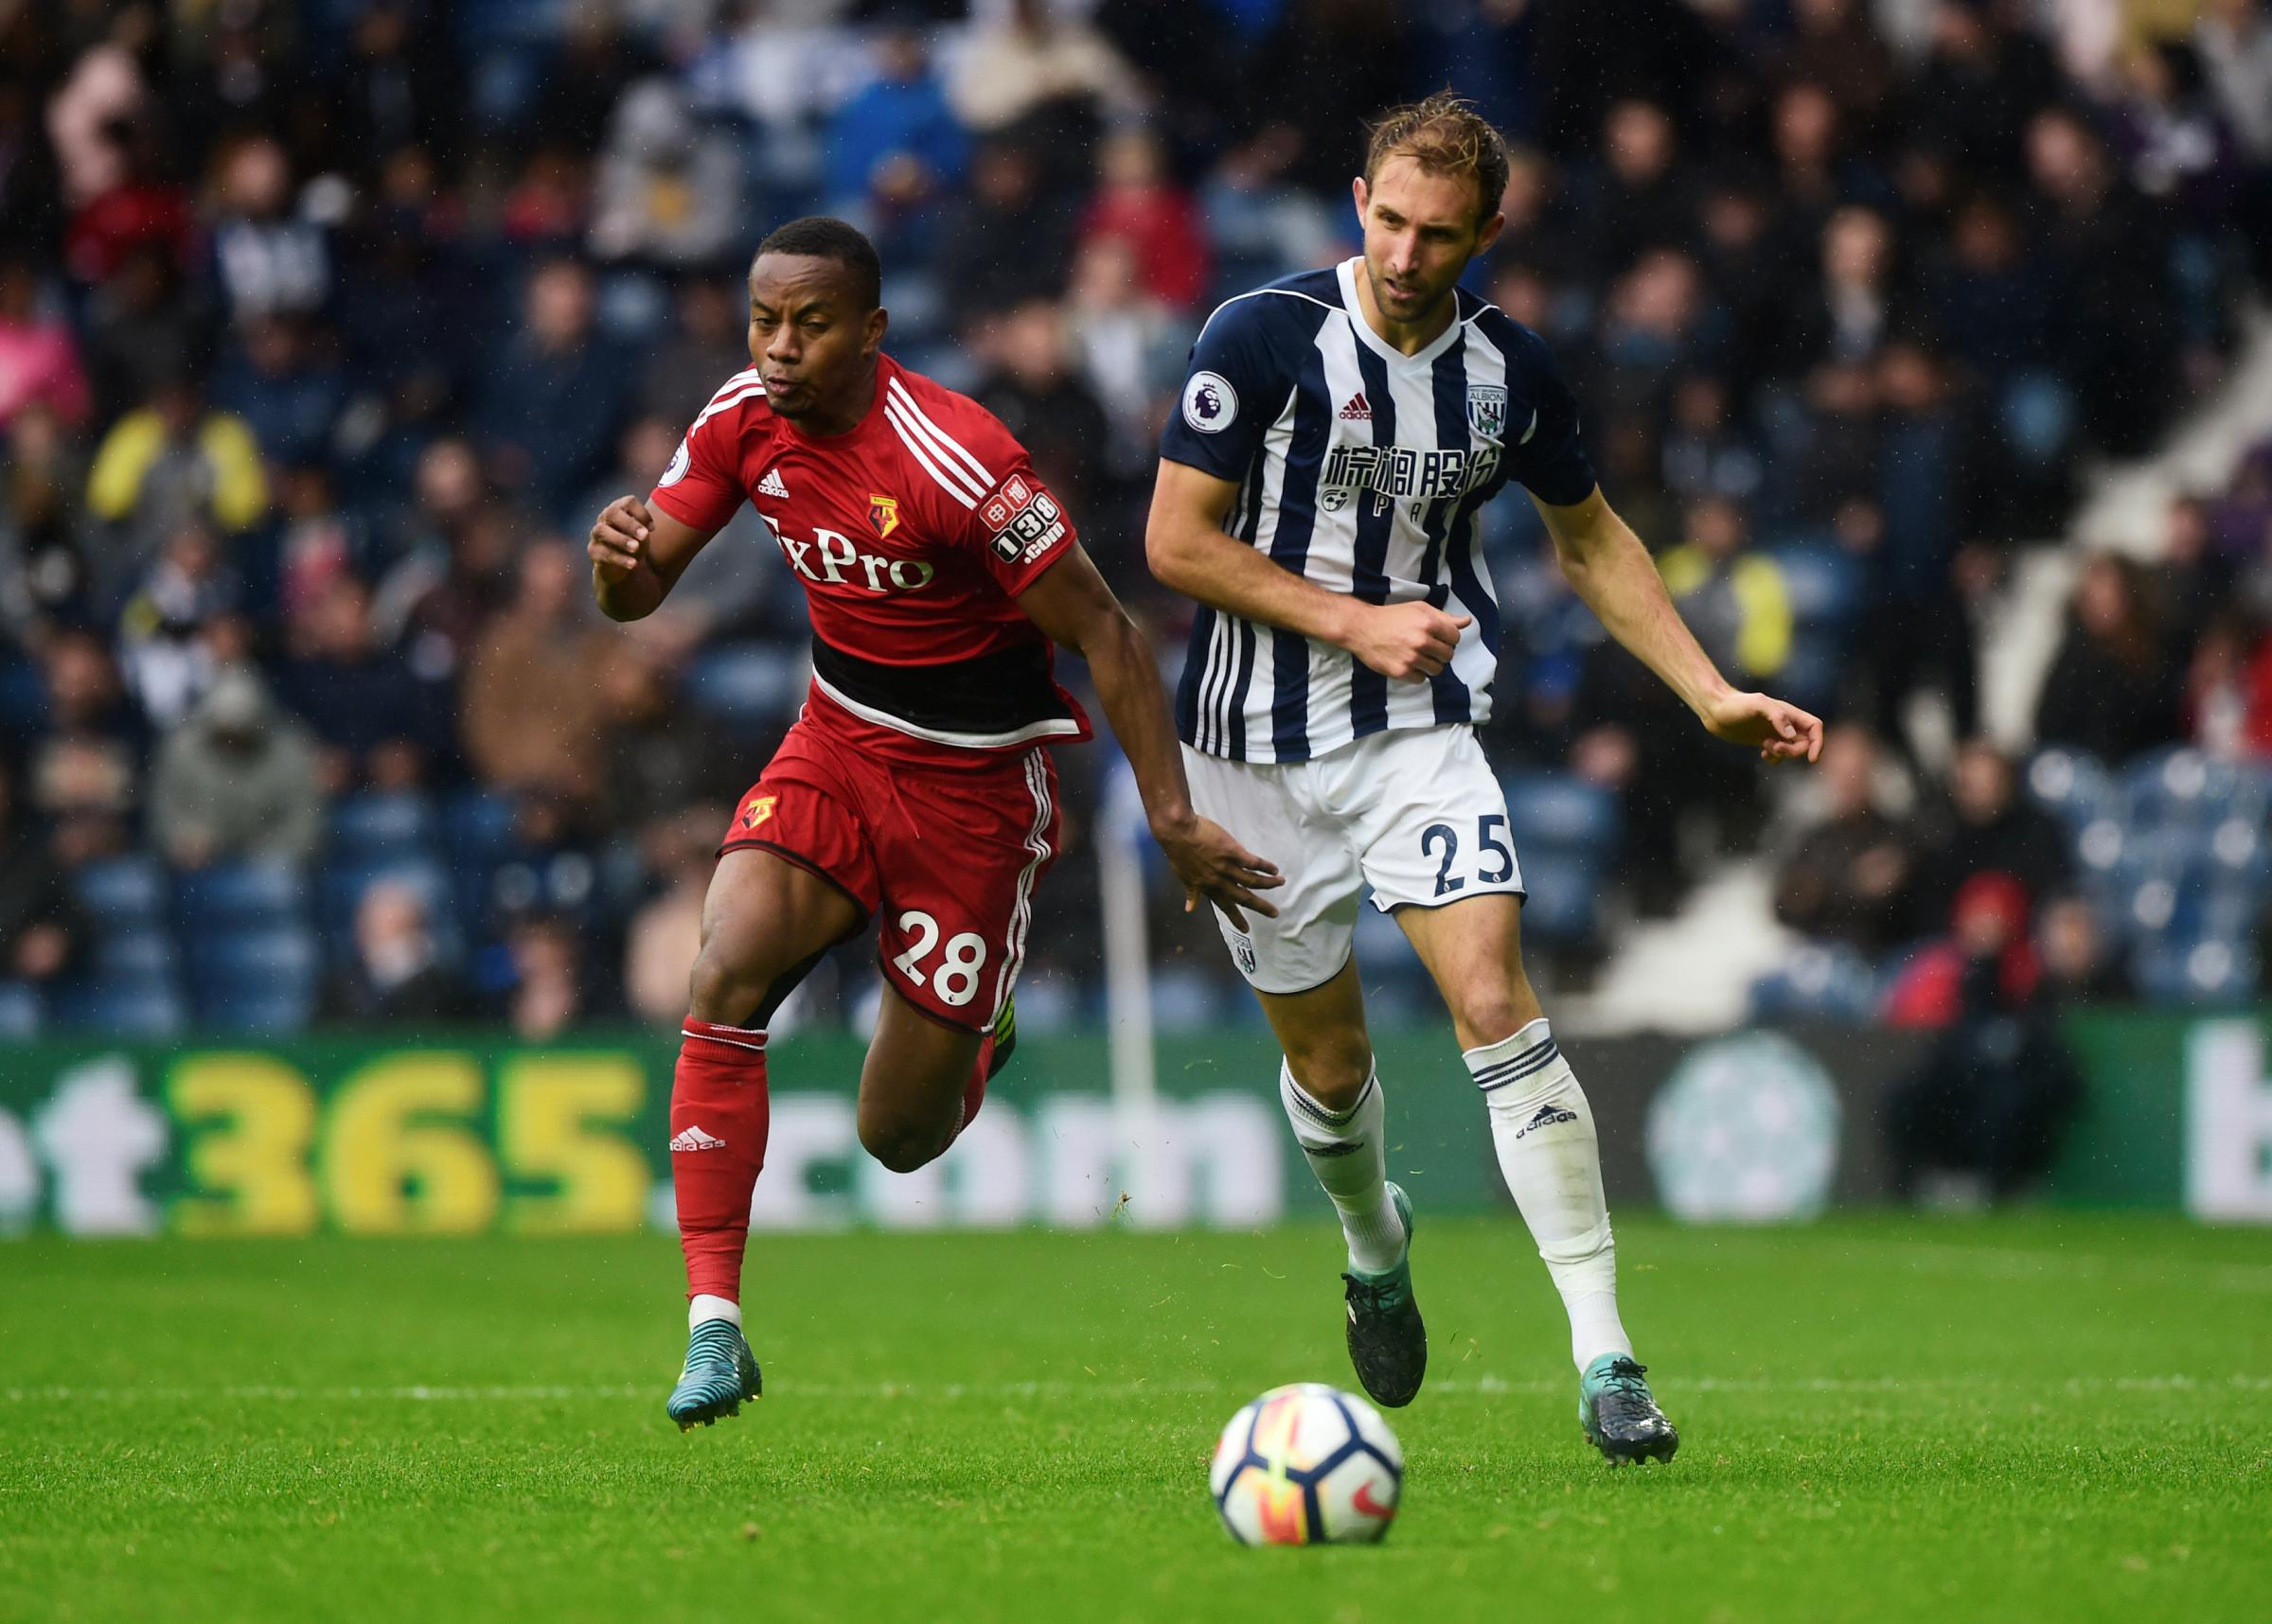 Andre Carrillo takes on Craig Dawson during last weekend's draw at The Hawthorns. Picture: Action Images